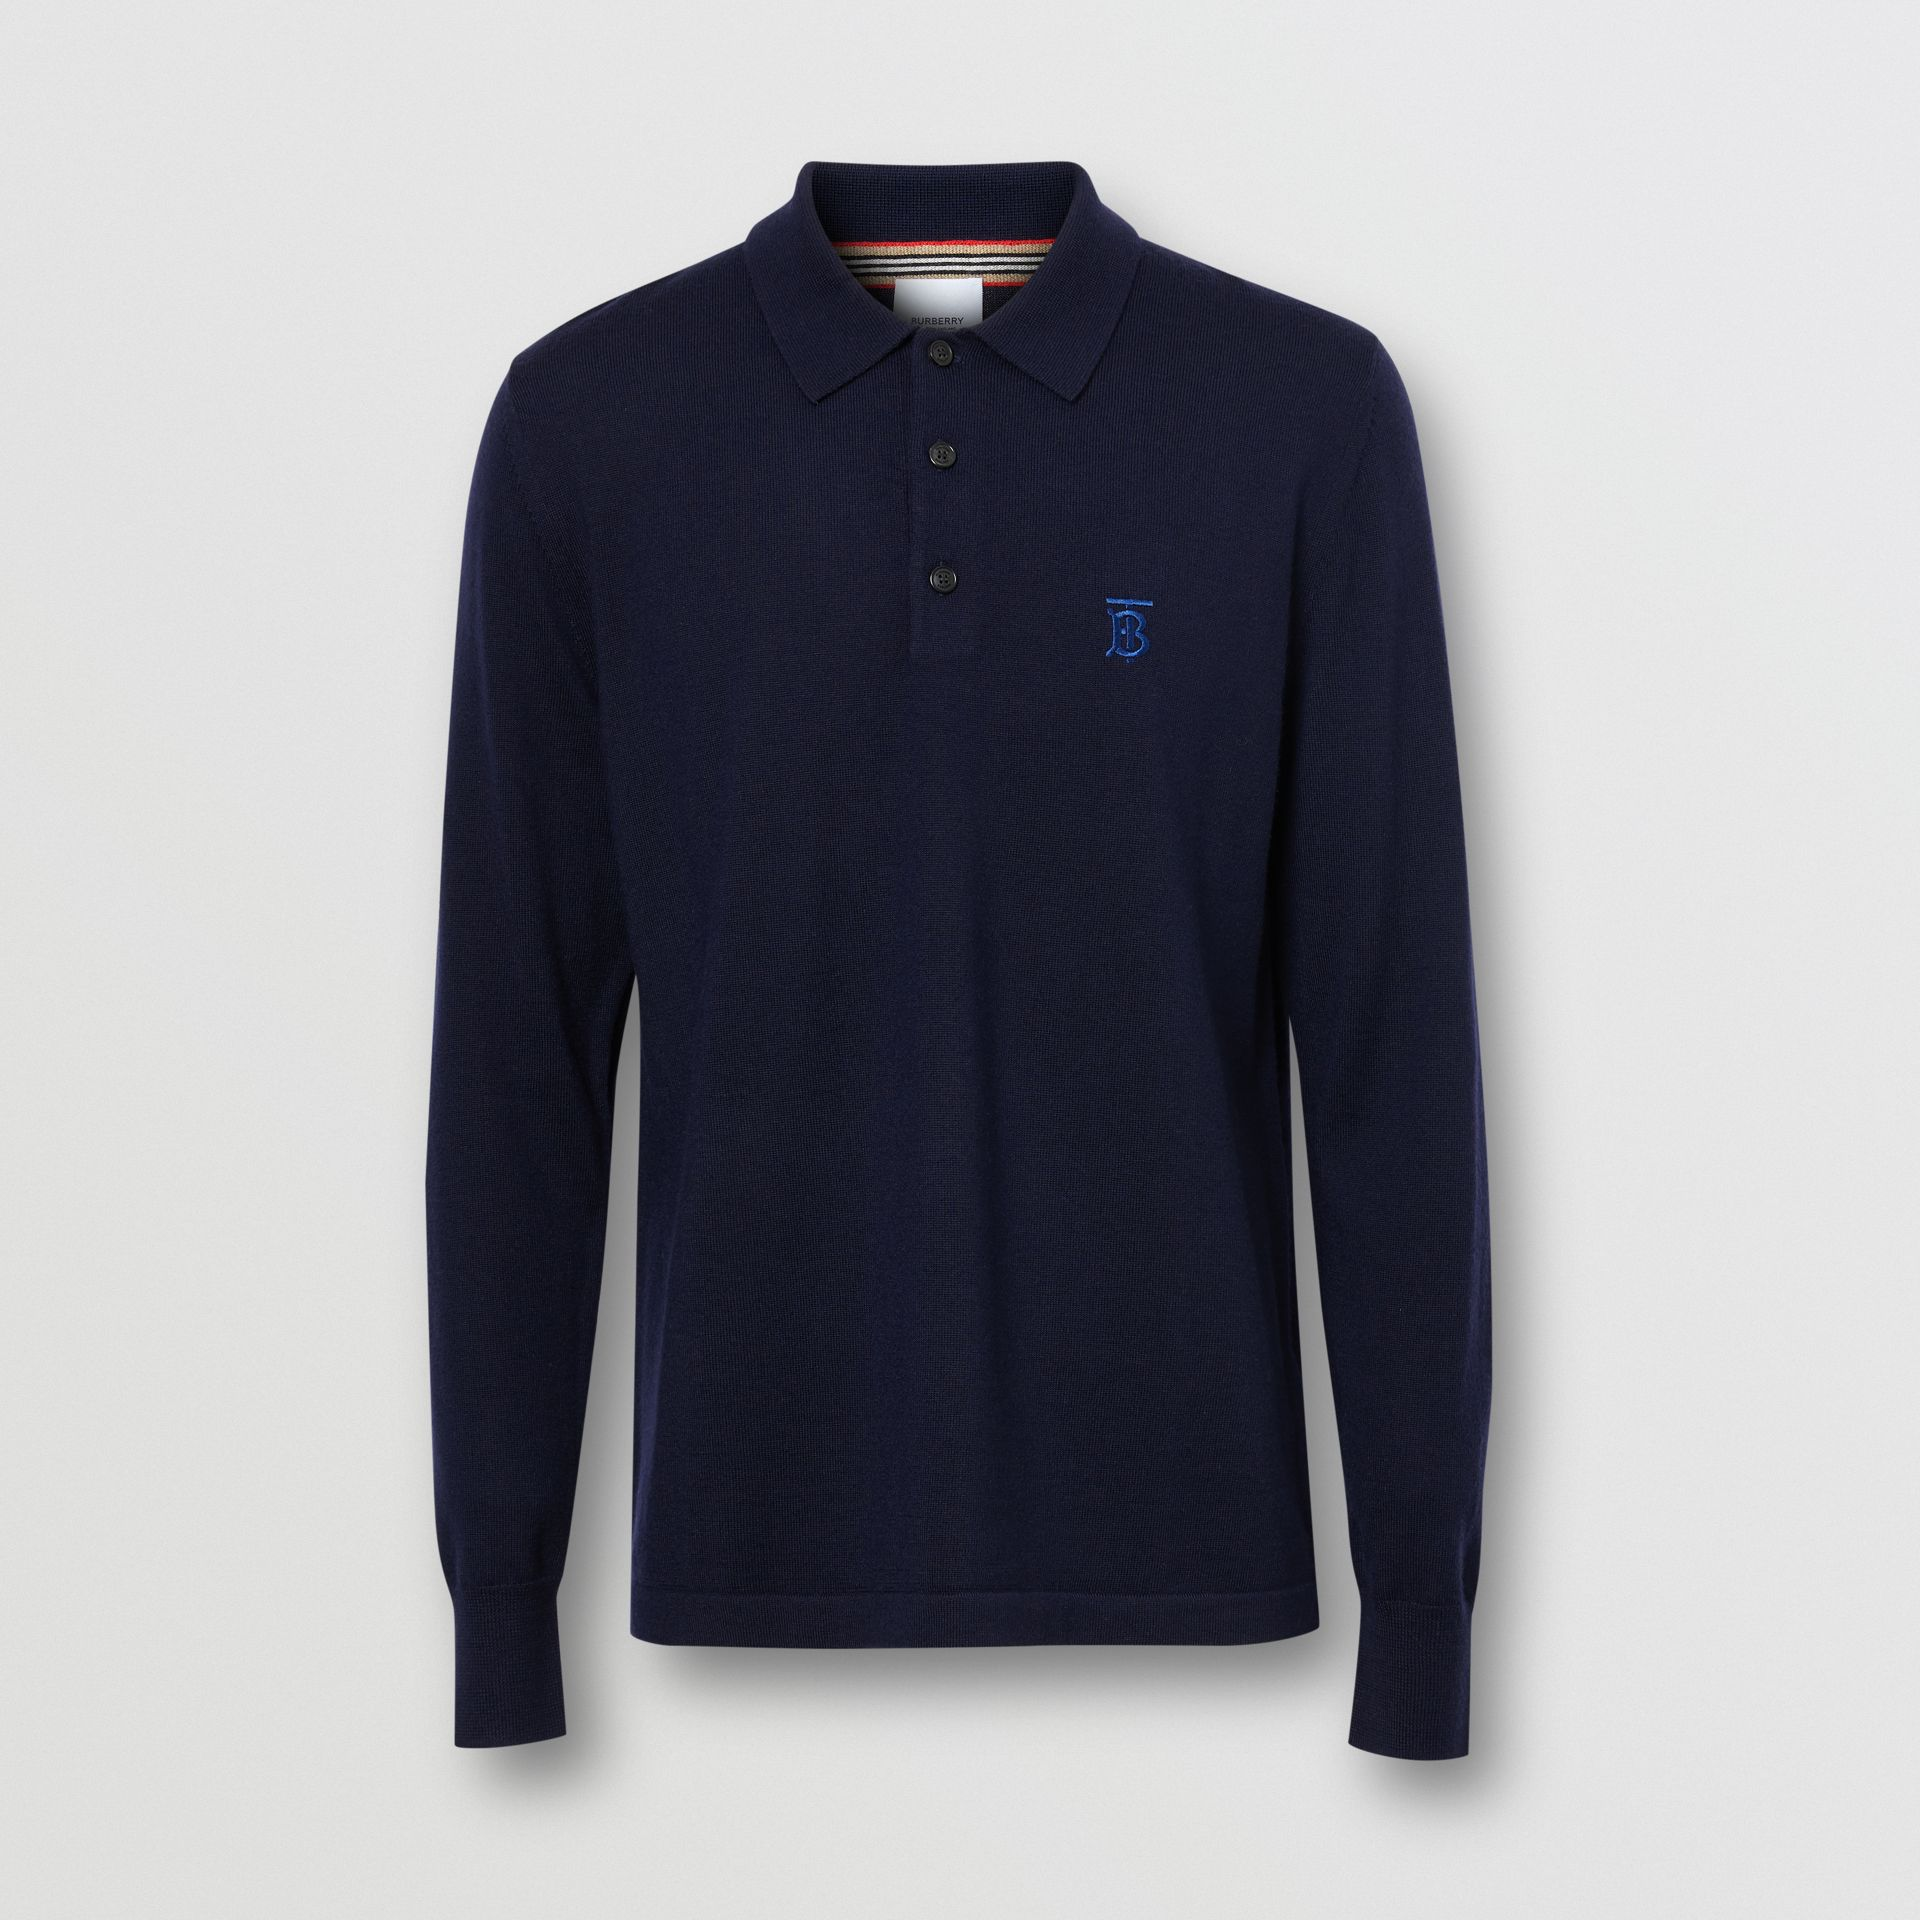 Long-sleeve Monogram Motif Merino Wool Polo Shirt in Navy - Men | Burberry - gallery image 3